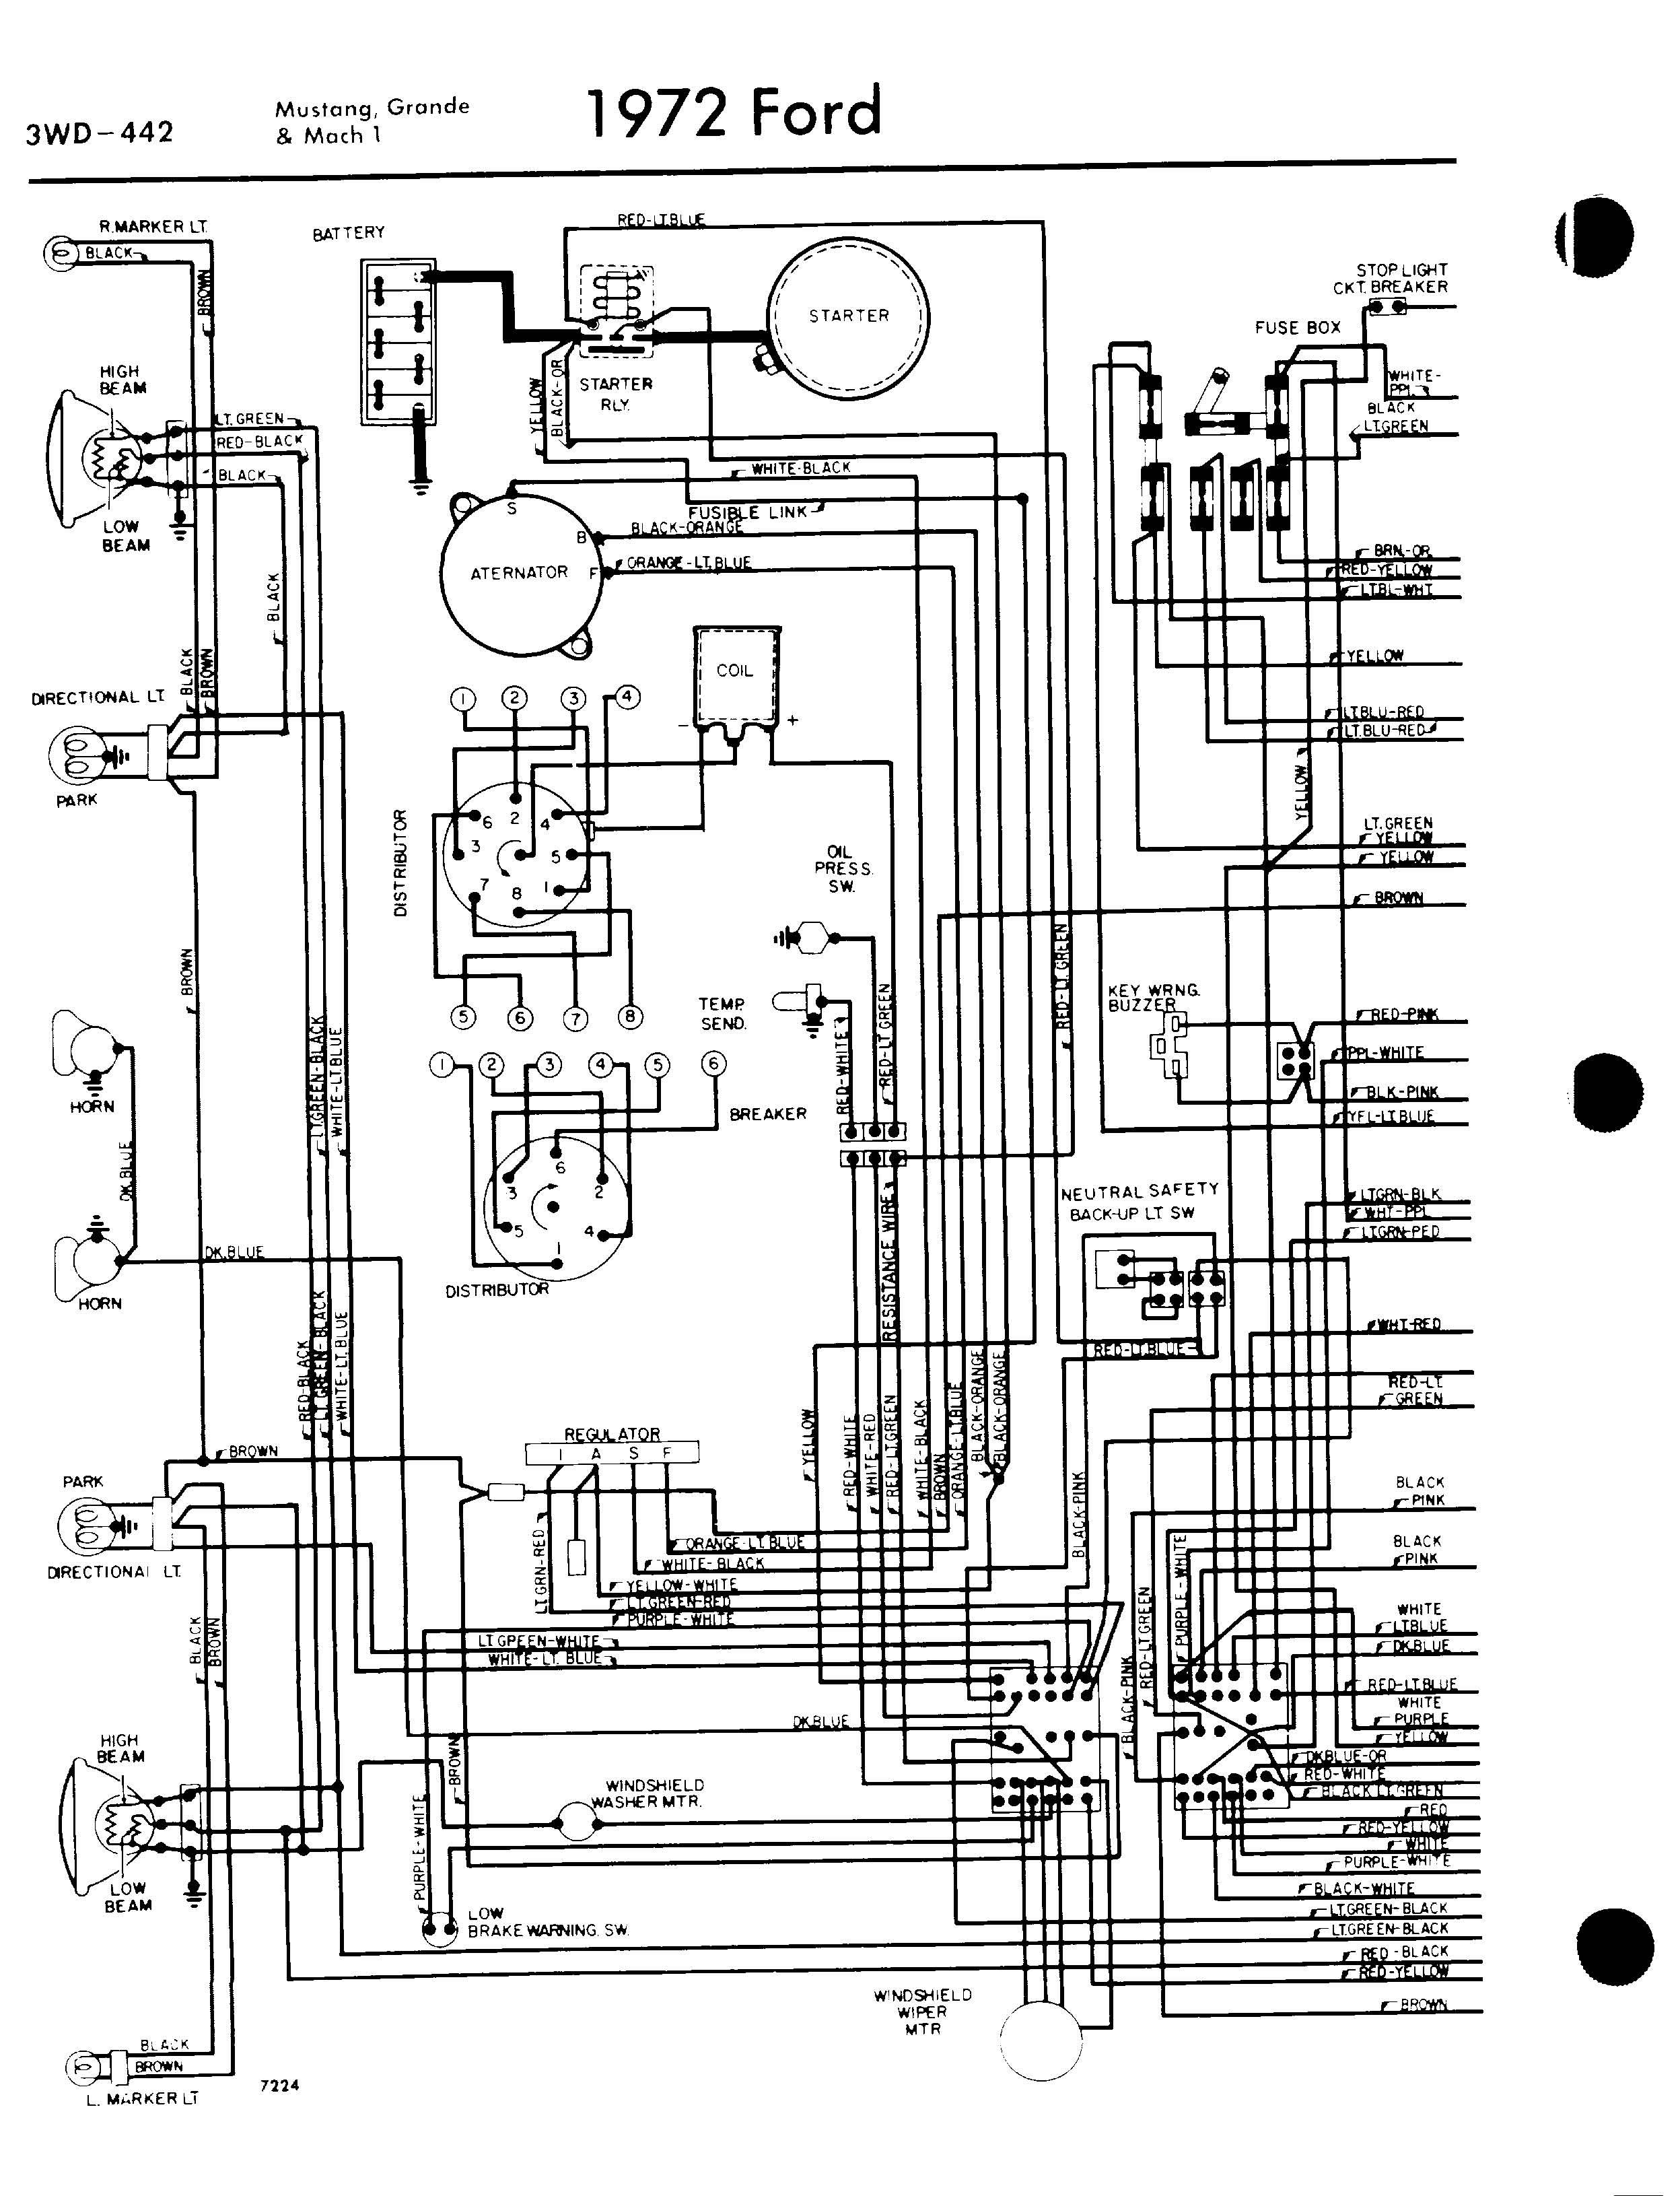 71af7a58e095e6a7716b32f1b23e8bd2 72 mach1 alternator wire harness diagram yahoo search results 74 Mustang at panicattacktreatment.co